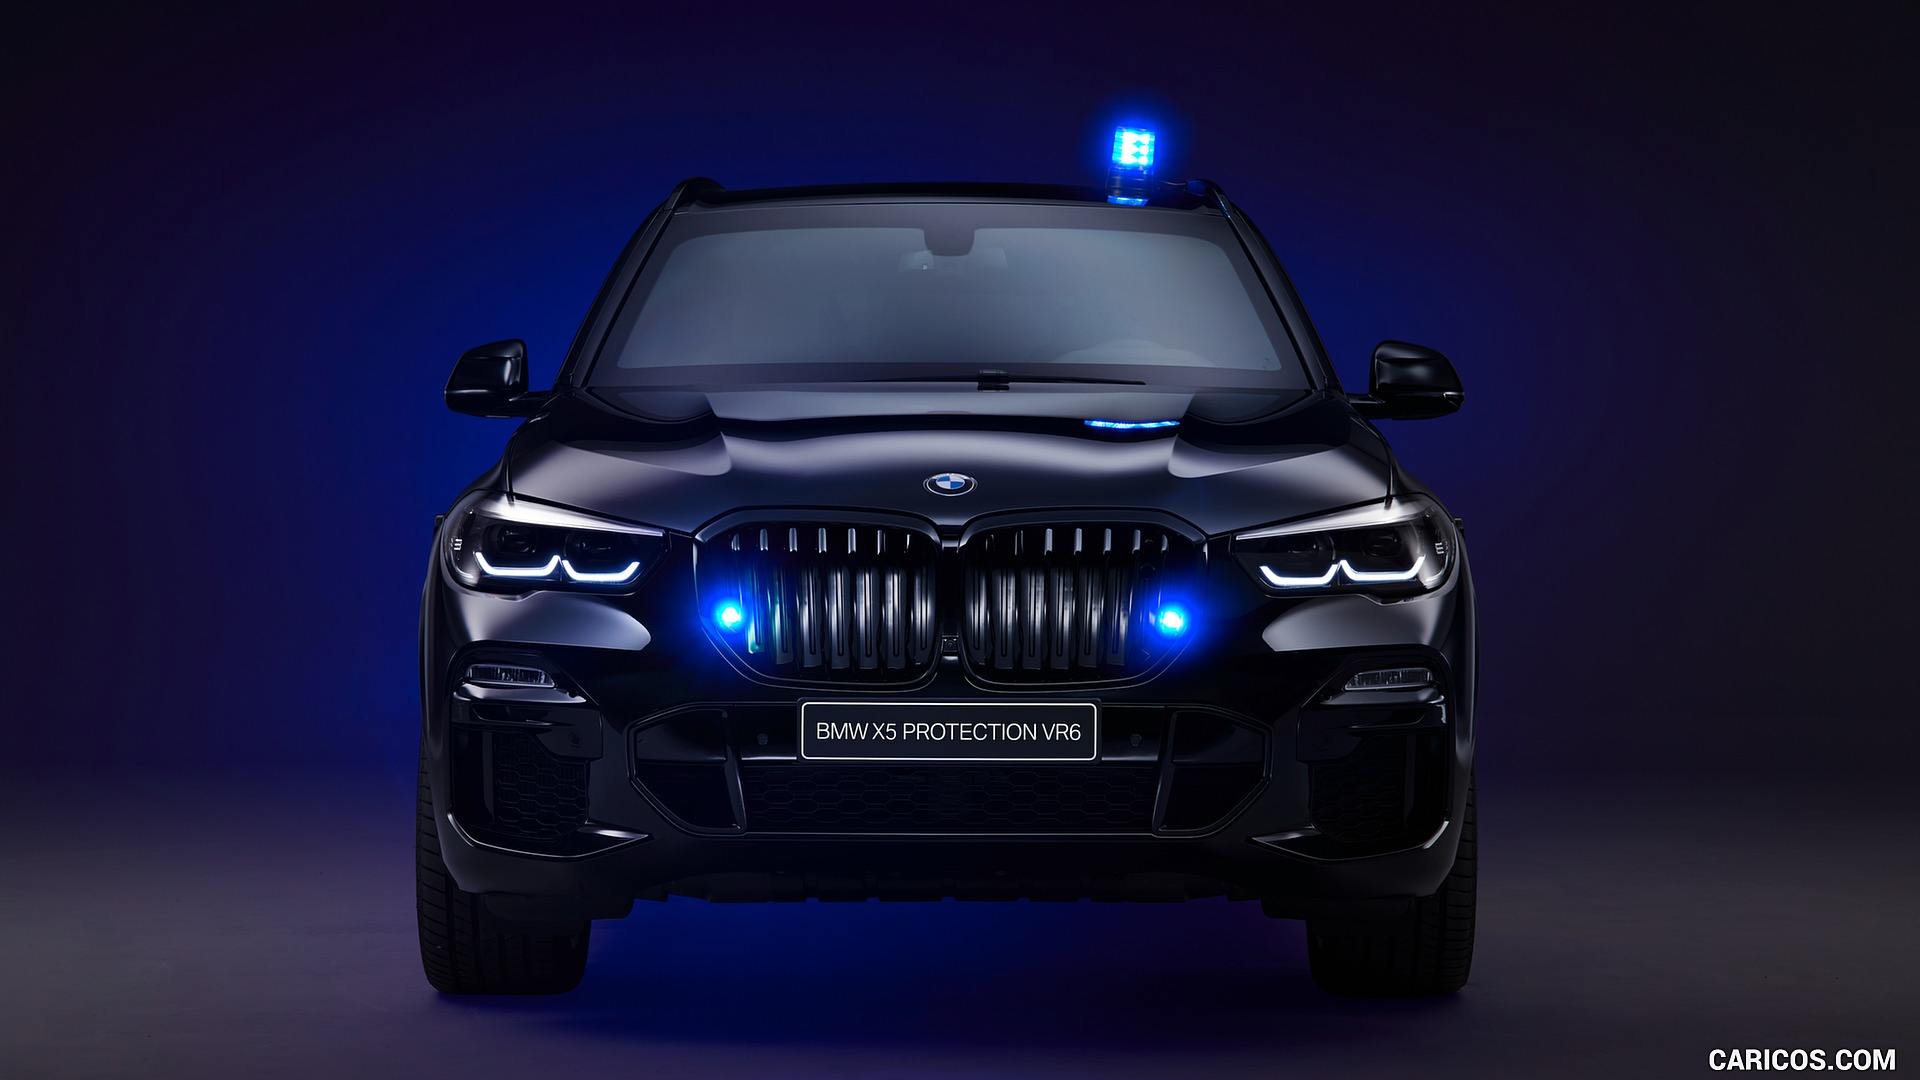 2020 BMW X5 Protection VR6 Armored Vehicle   Front HD 1920x1080